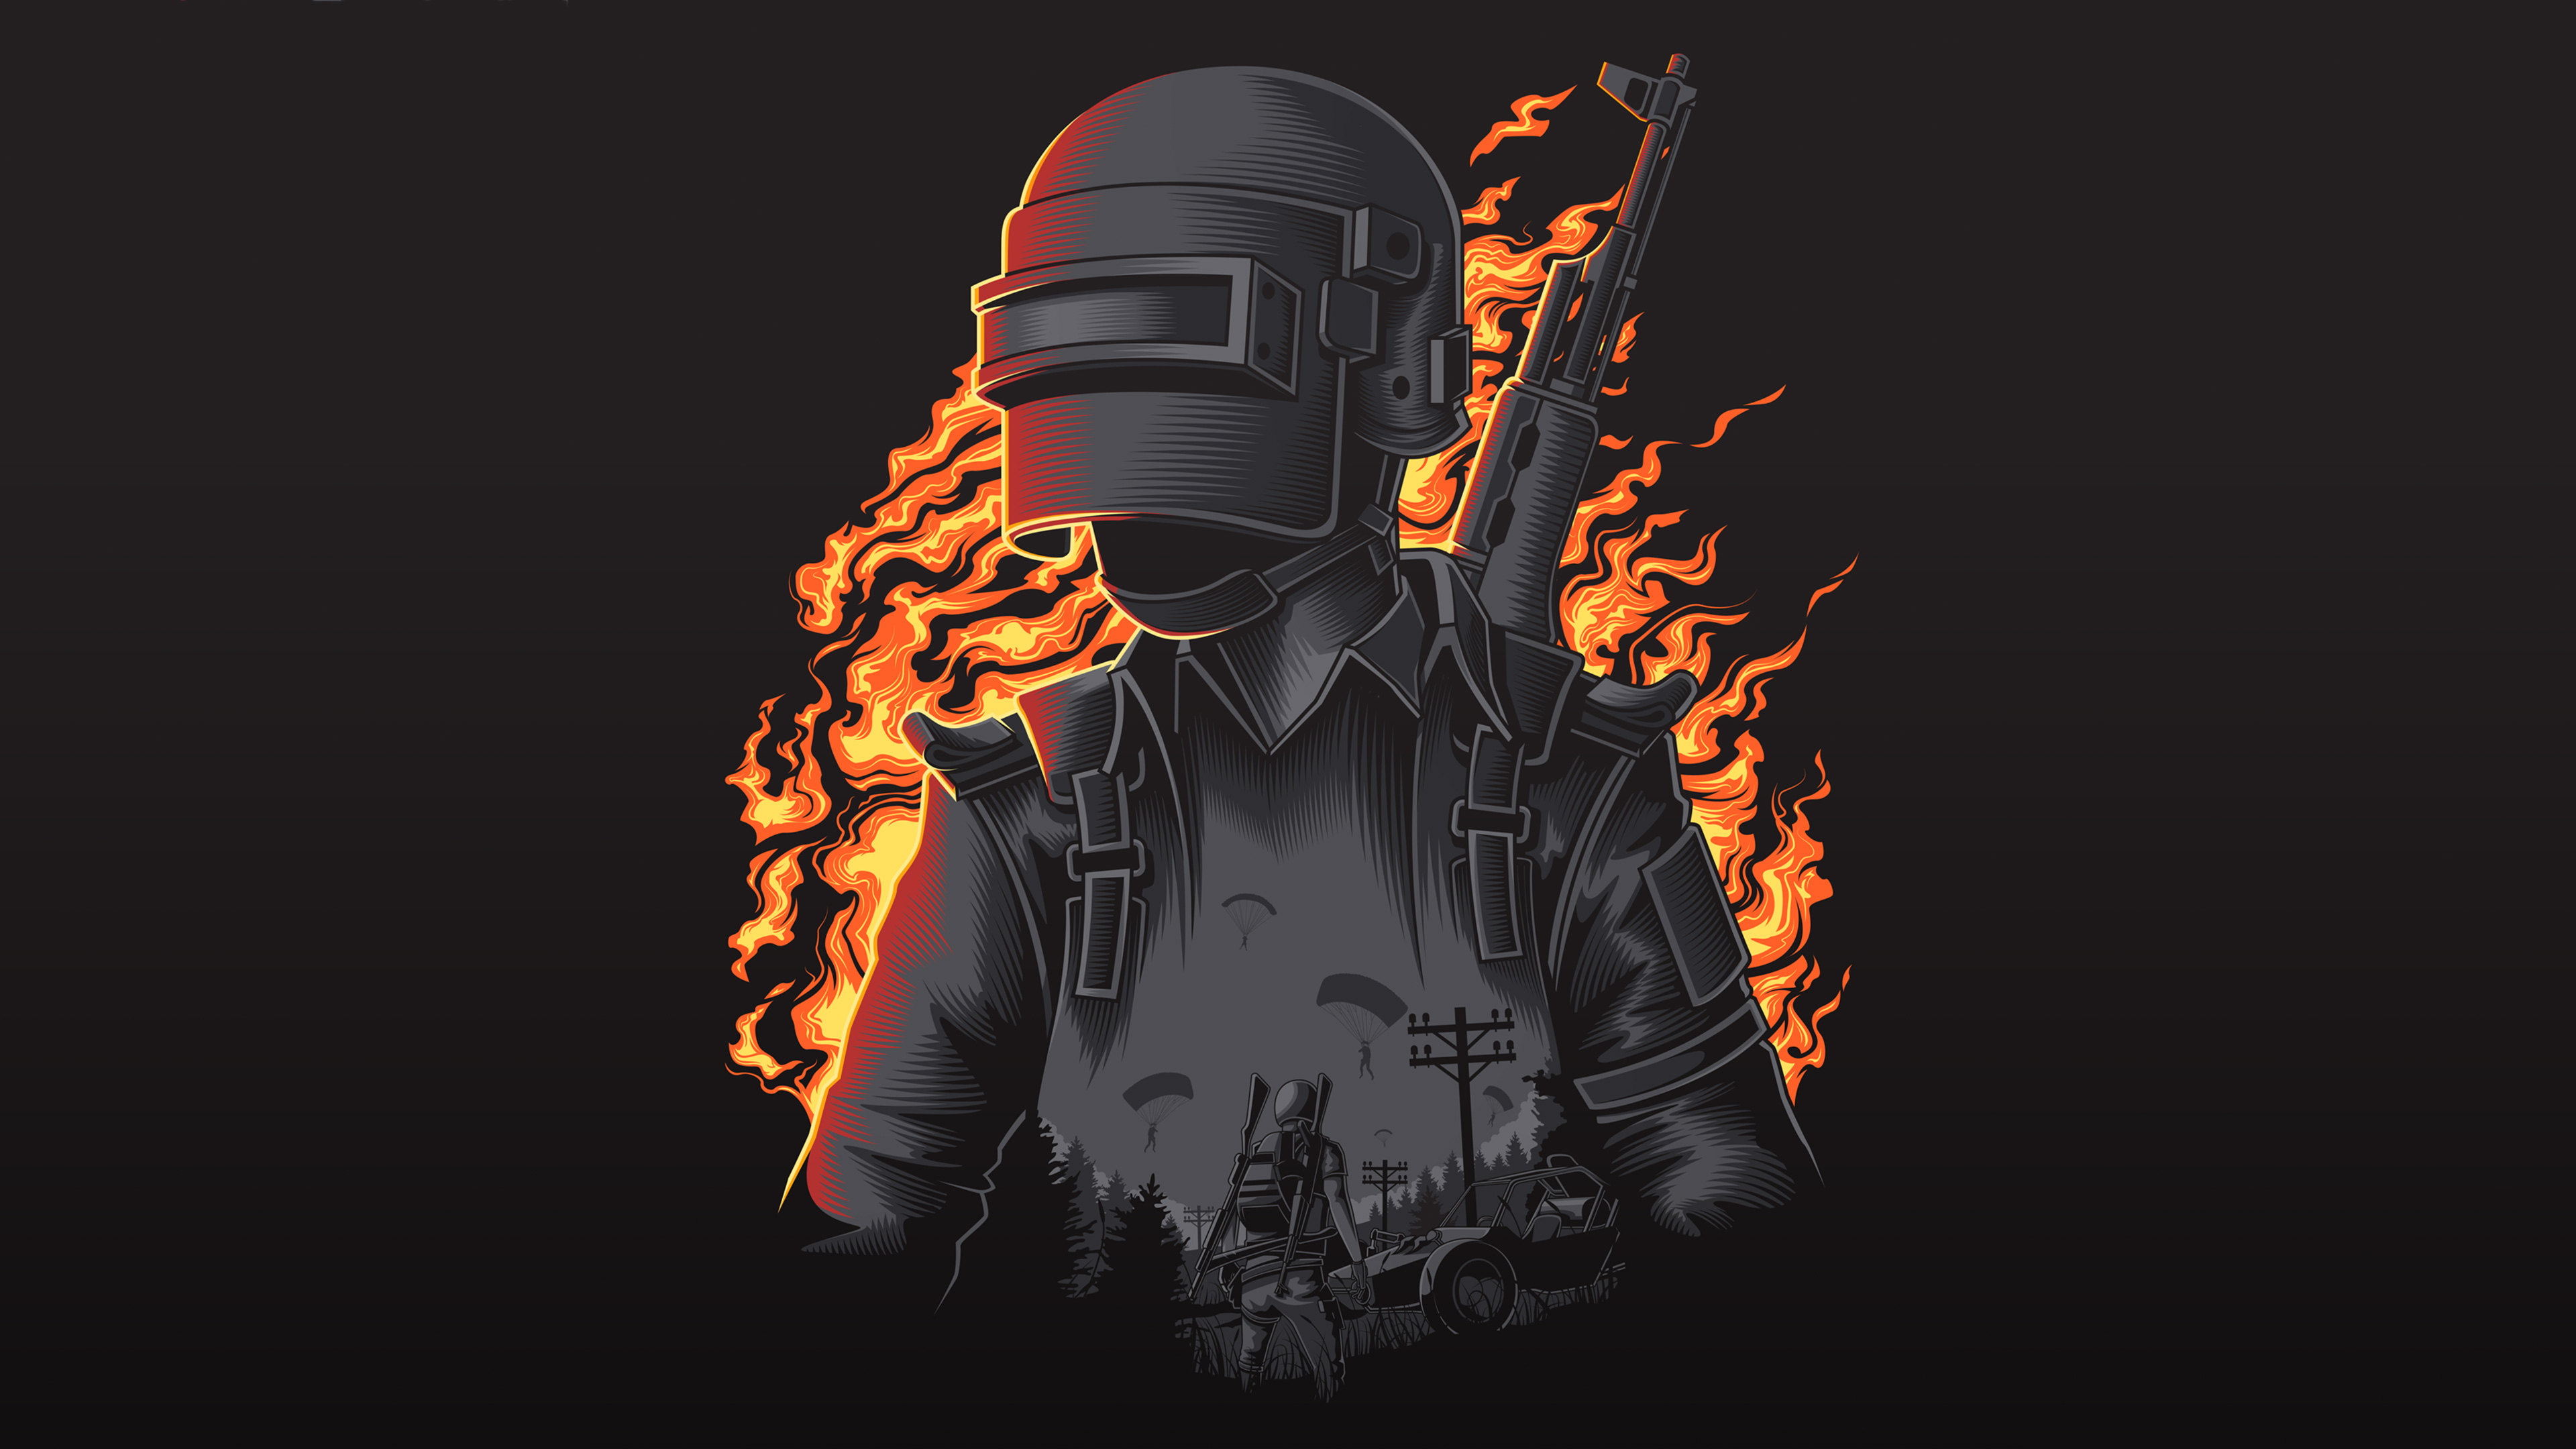 Pubg Mobile Full Screen Wallpapers: Pubg Illustration 4k, HD Games, 4k Wallpapers, Images